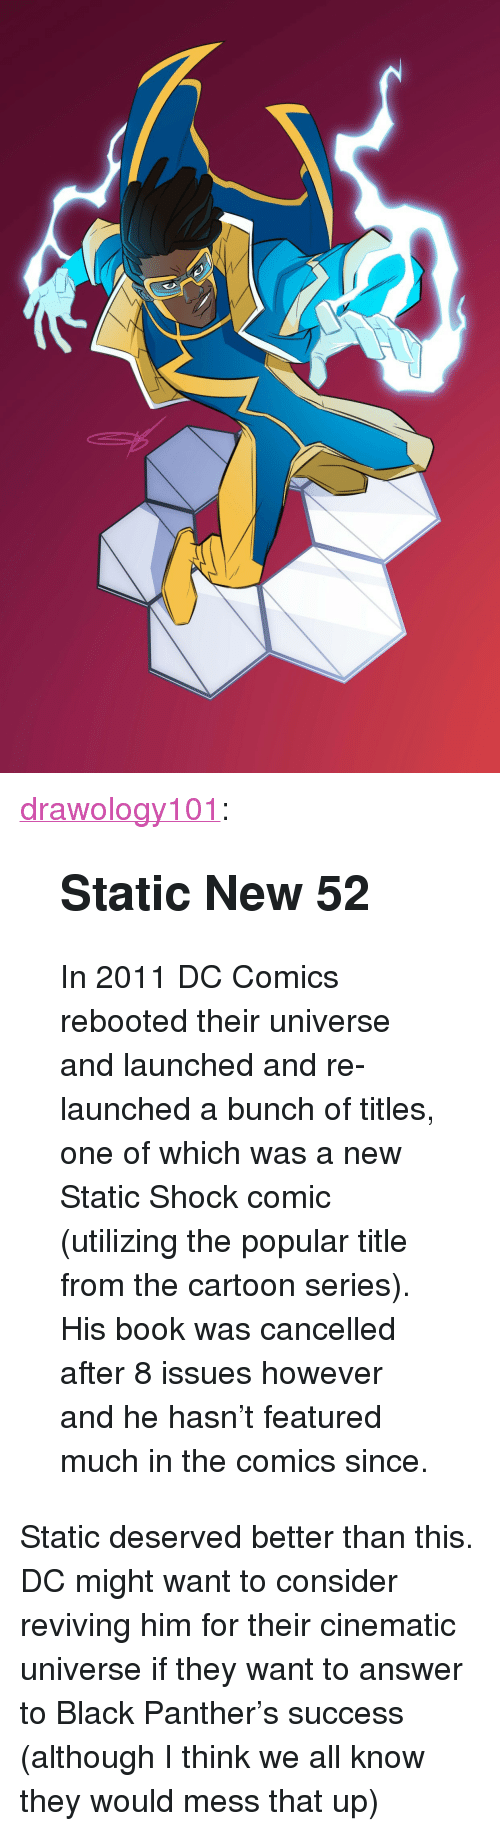 """Static Shock, Tumblr, and Black: <p><a href=""""https://drawology101.tumblr.com/post/170654797291/static-new-52-in-2011-dc-comics-rebooted-their"""" class=""""tumblr_blog"""">drawology101</a>:</p><blockquote> <h2><b>Static New 52</b></h2> <p>In 2011 DC Comics rebooted their universe and launched and re-launched a bunch of titles, one of which was a new Static Shock comic (utilizing the popular title from the cartoon series). His book was cancelled after 8 issues however and he hasn't featured much in the comics since.</p> </blockquote>  <p>Static deserved better than this. DC might want to consider reviving him for their cinematic universe if they want to answer to Black Panther's success (although I think we all know they would mess that up)</p>"""